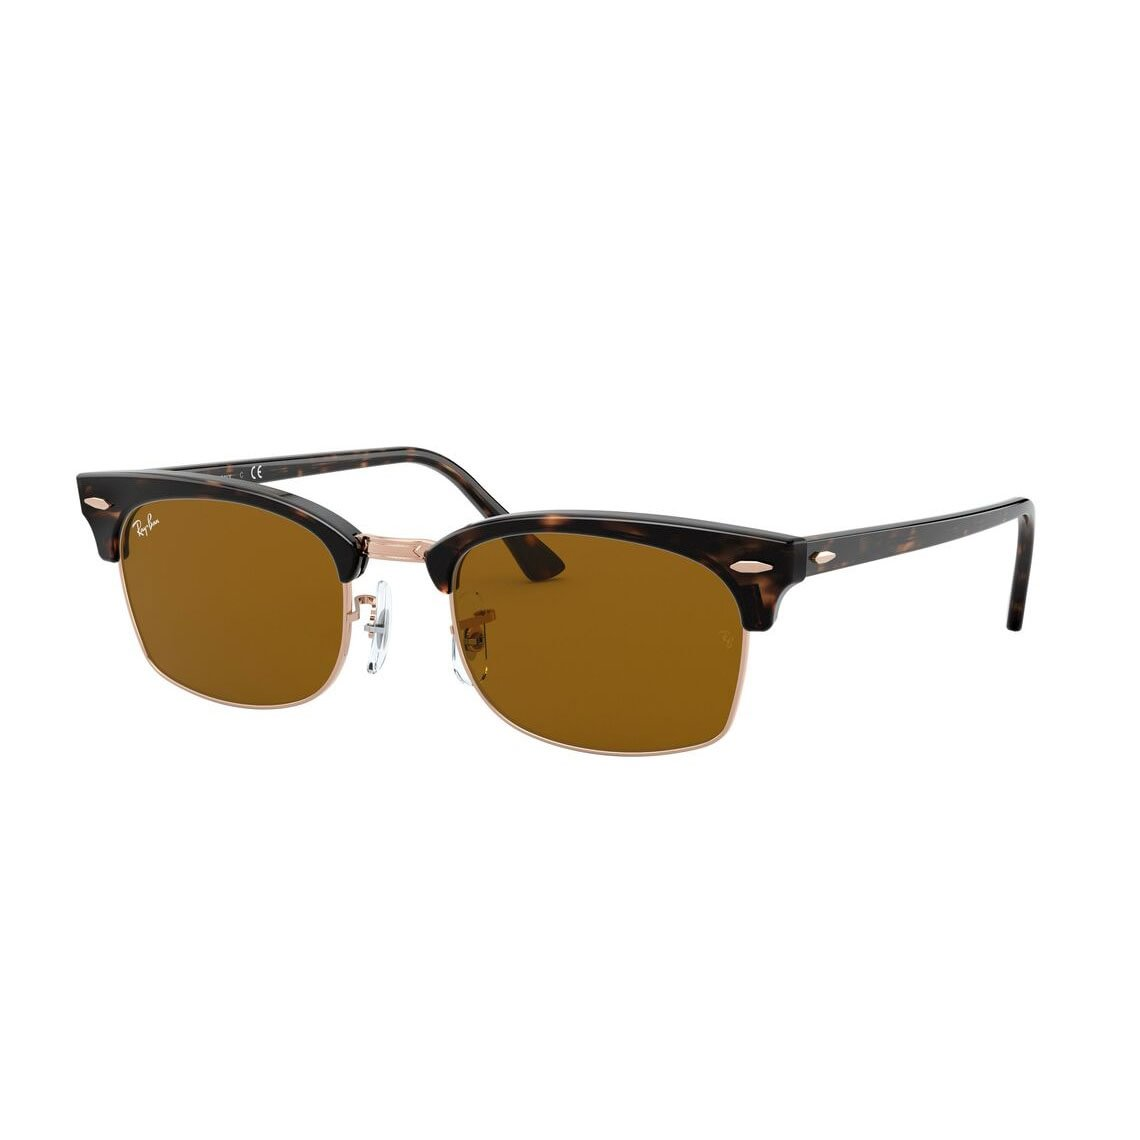 Ray-Ban Clubmaster Square RB3916 130933 5221